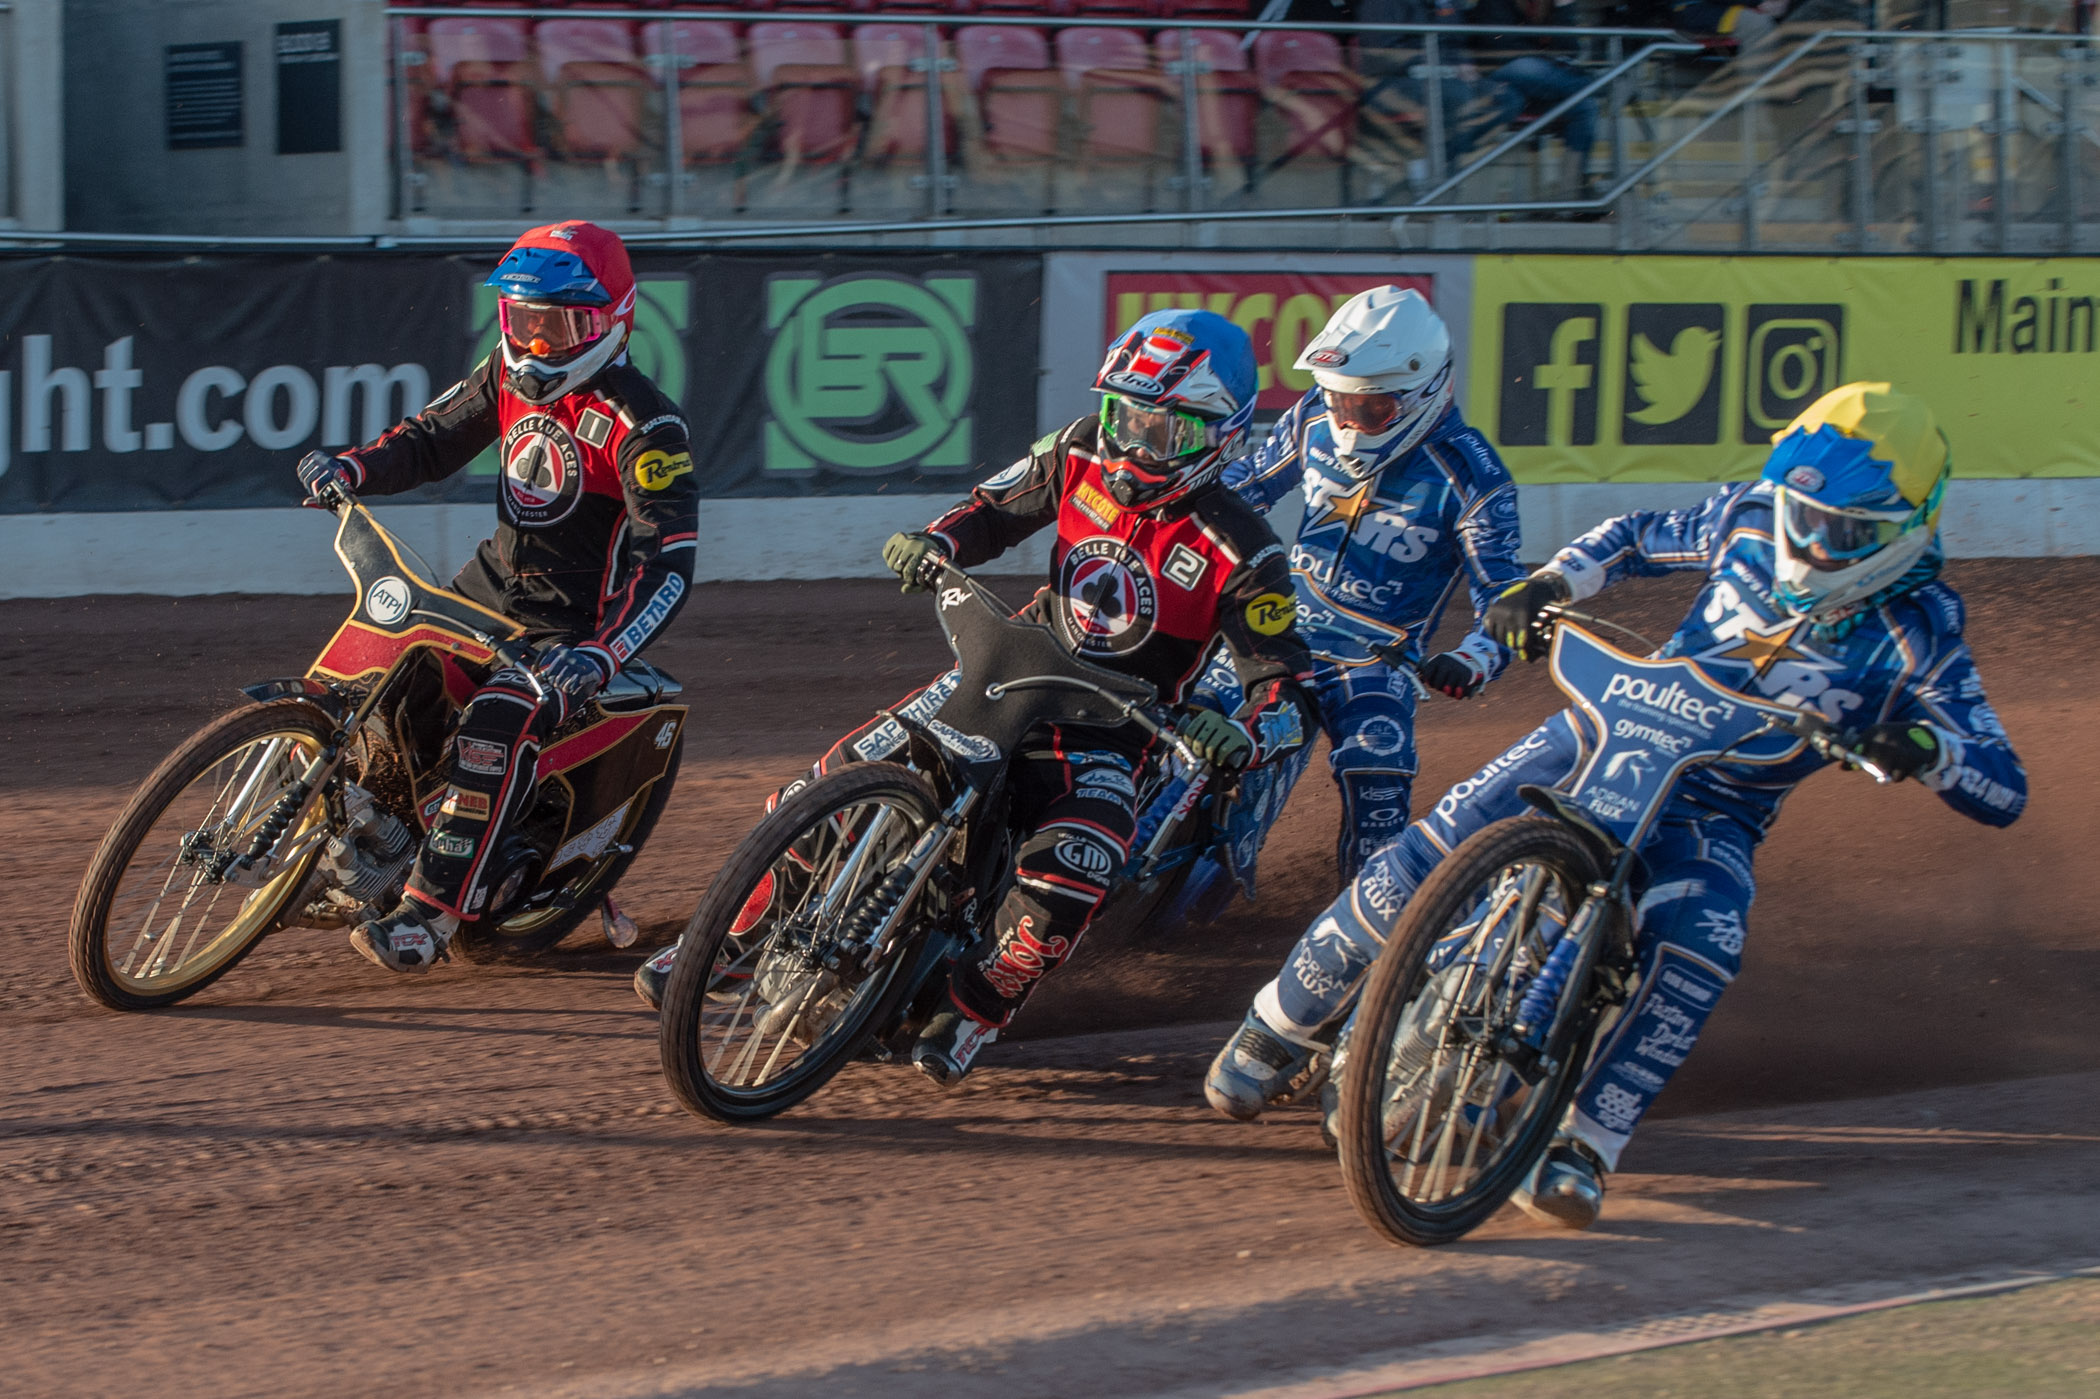 Max Fricke (red) went through the card to record a 15-point maximum